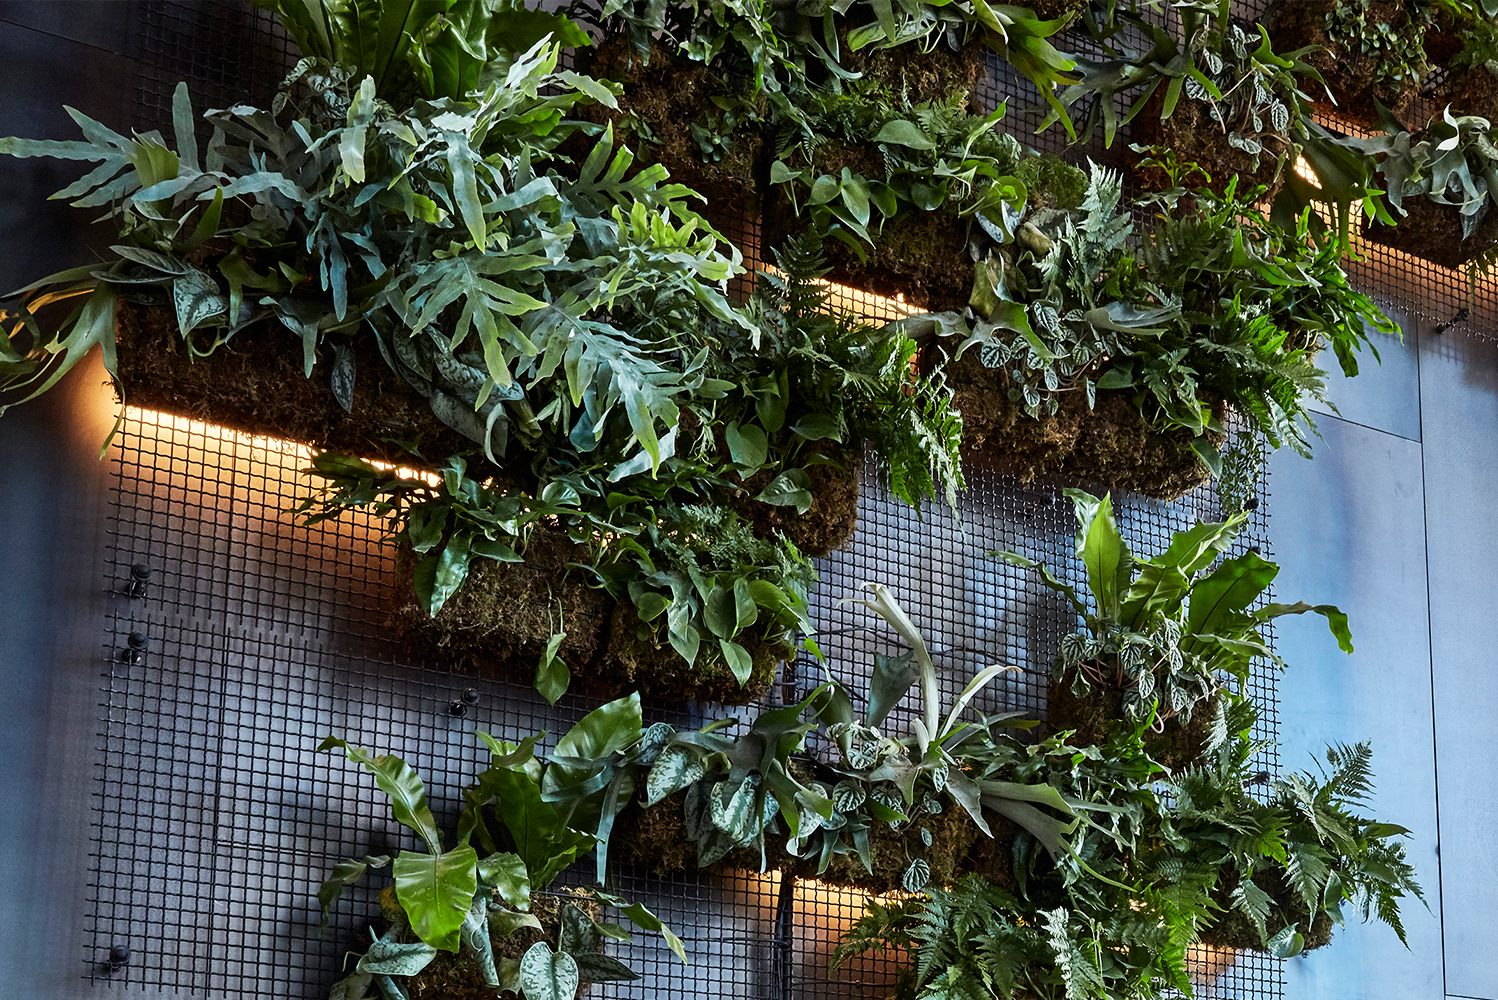 Banker Wire's wire mesh pattern I-21 creates a woven fixture screen and custom welded wire mesh hanging baskets for vegetation.